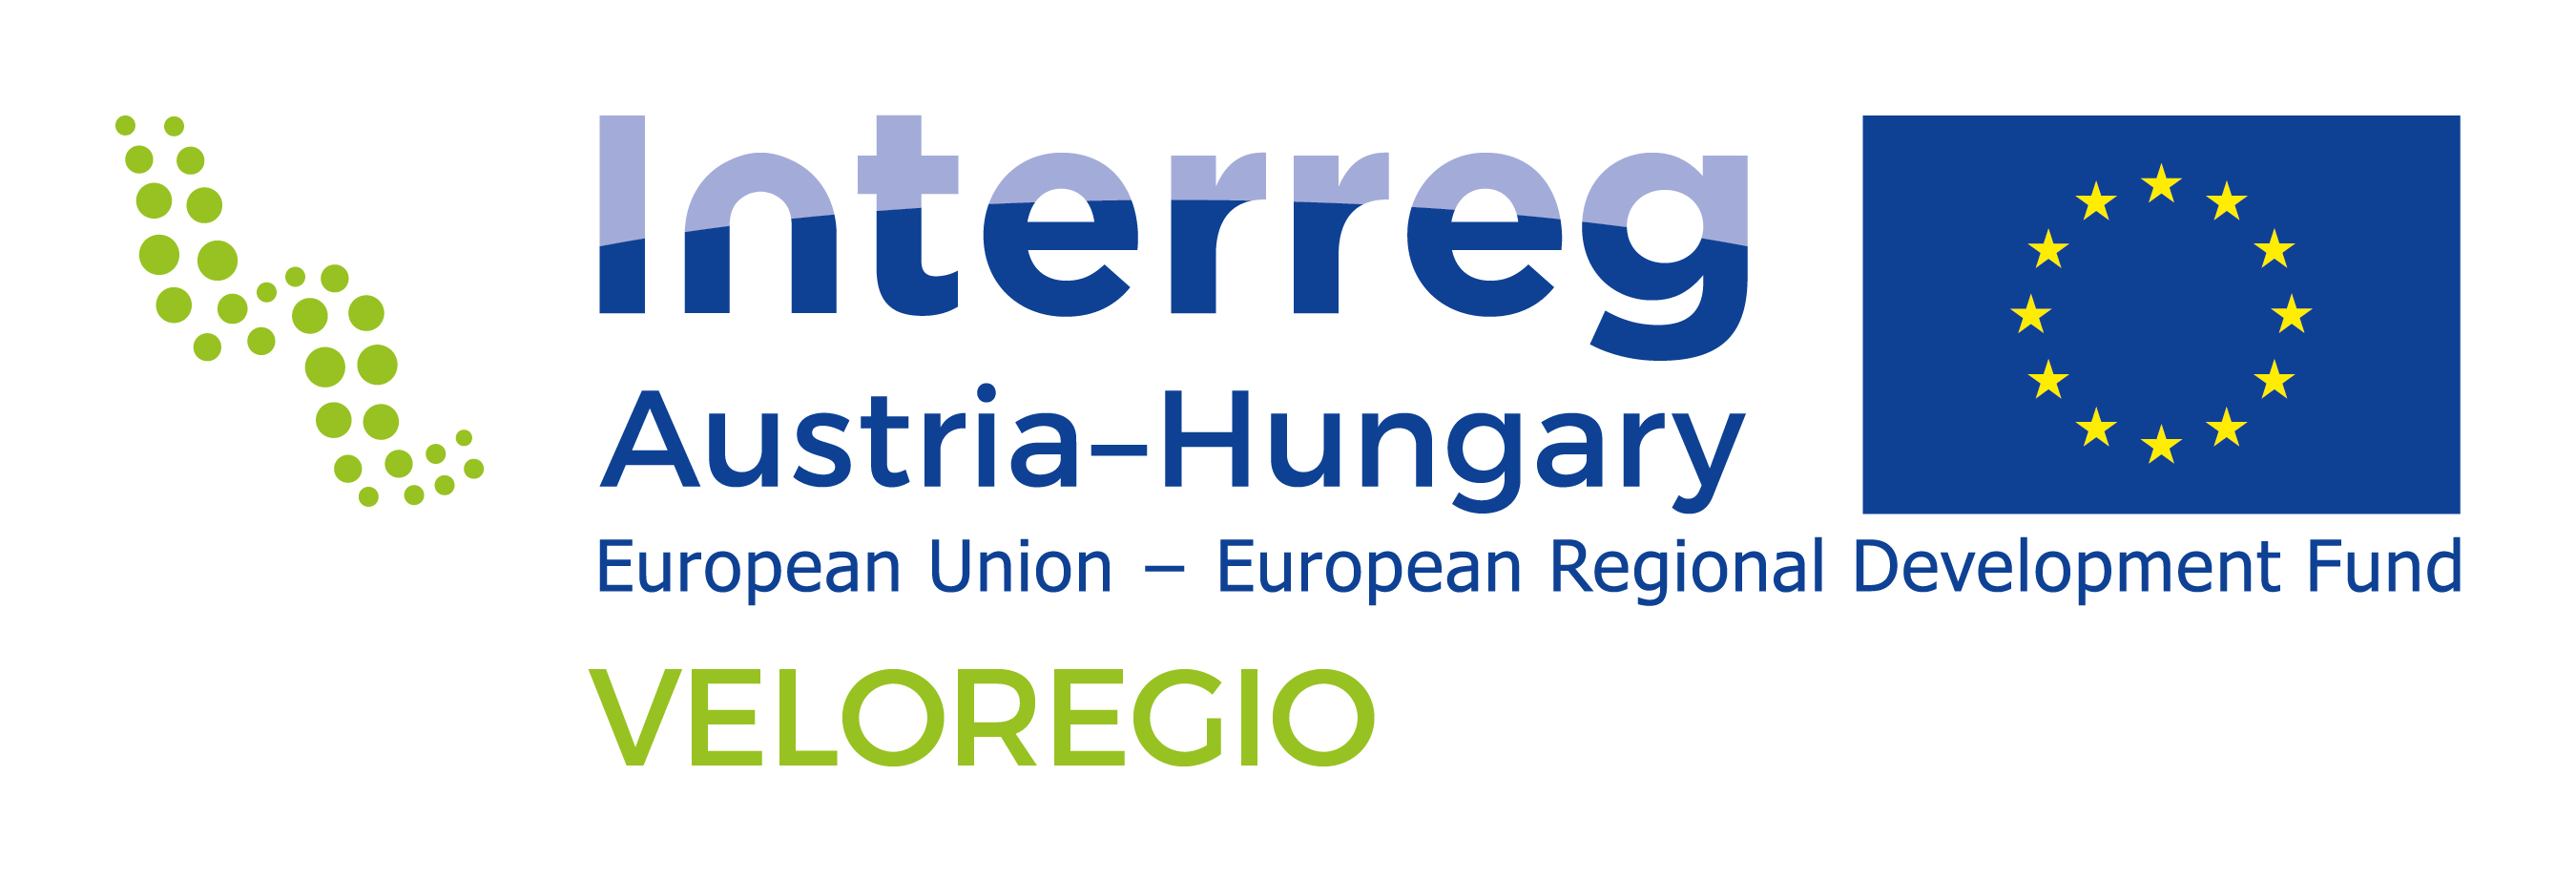 Projectlogo Interreg AT-HU_VELOREGIO_rgb